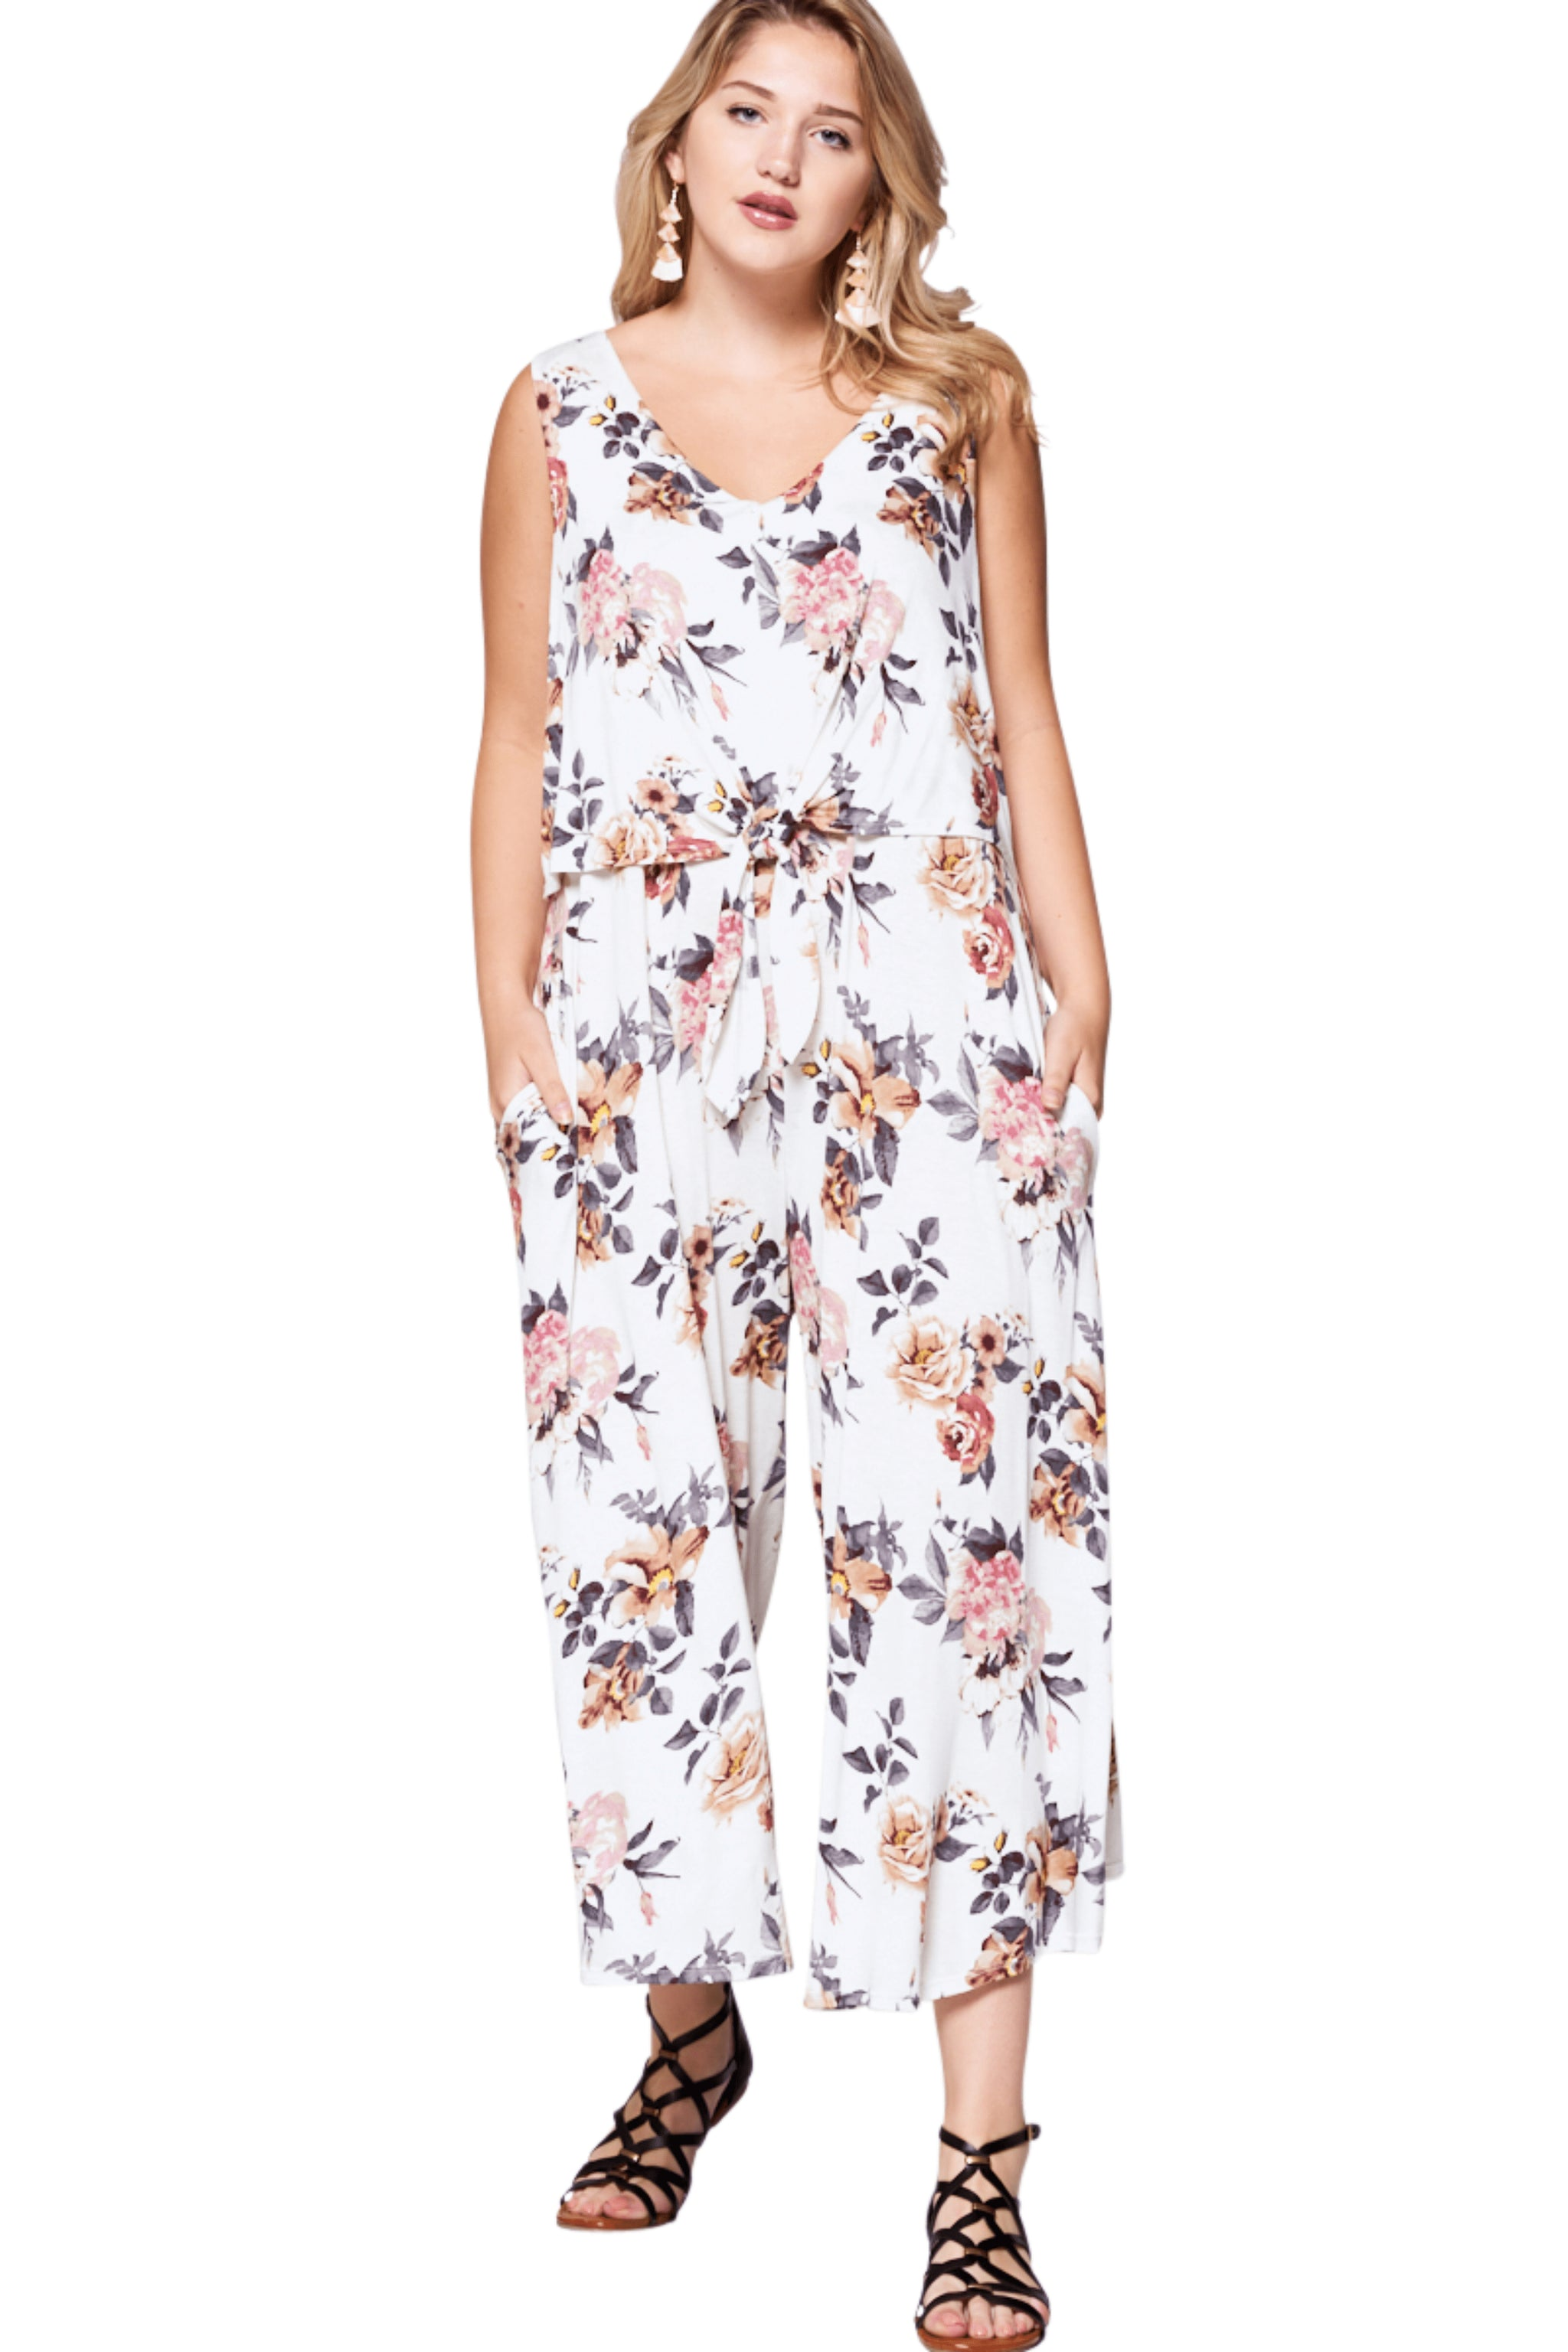 plus size Jumpsuit aa. Hallie Jumpsuit - White Floral